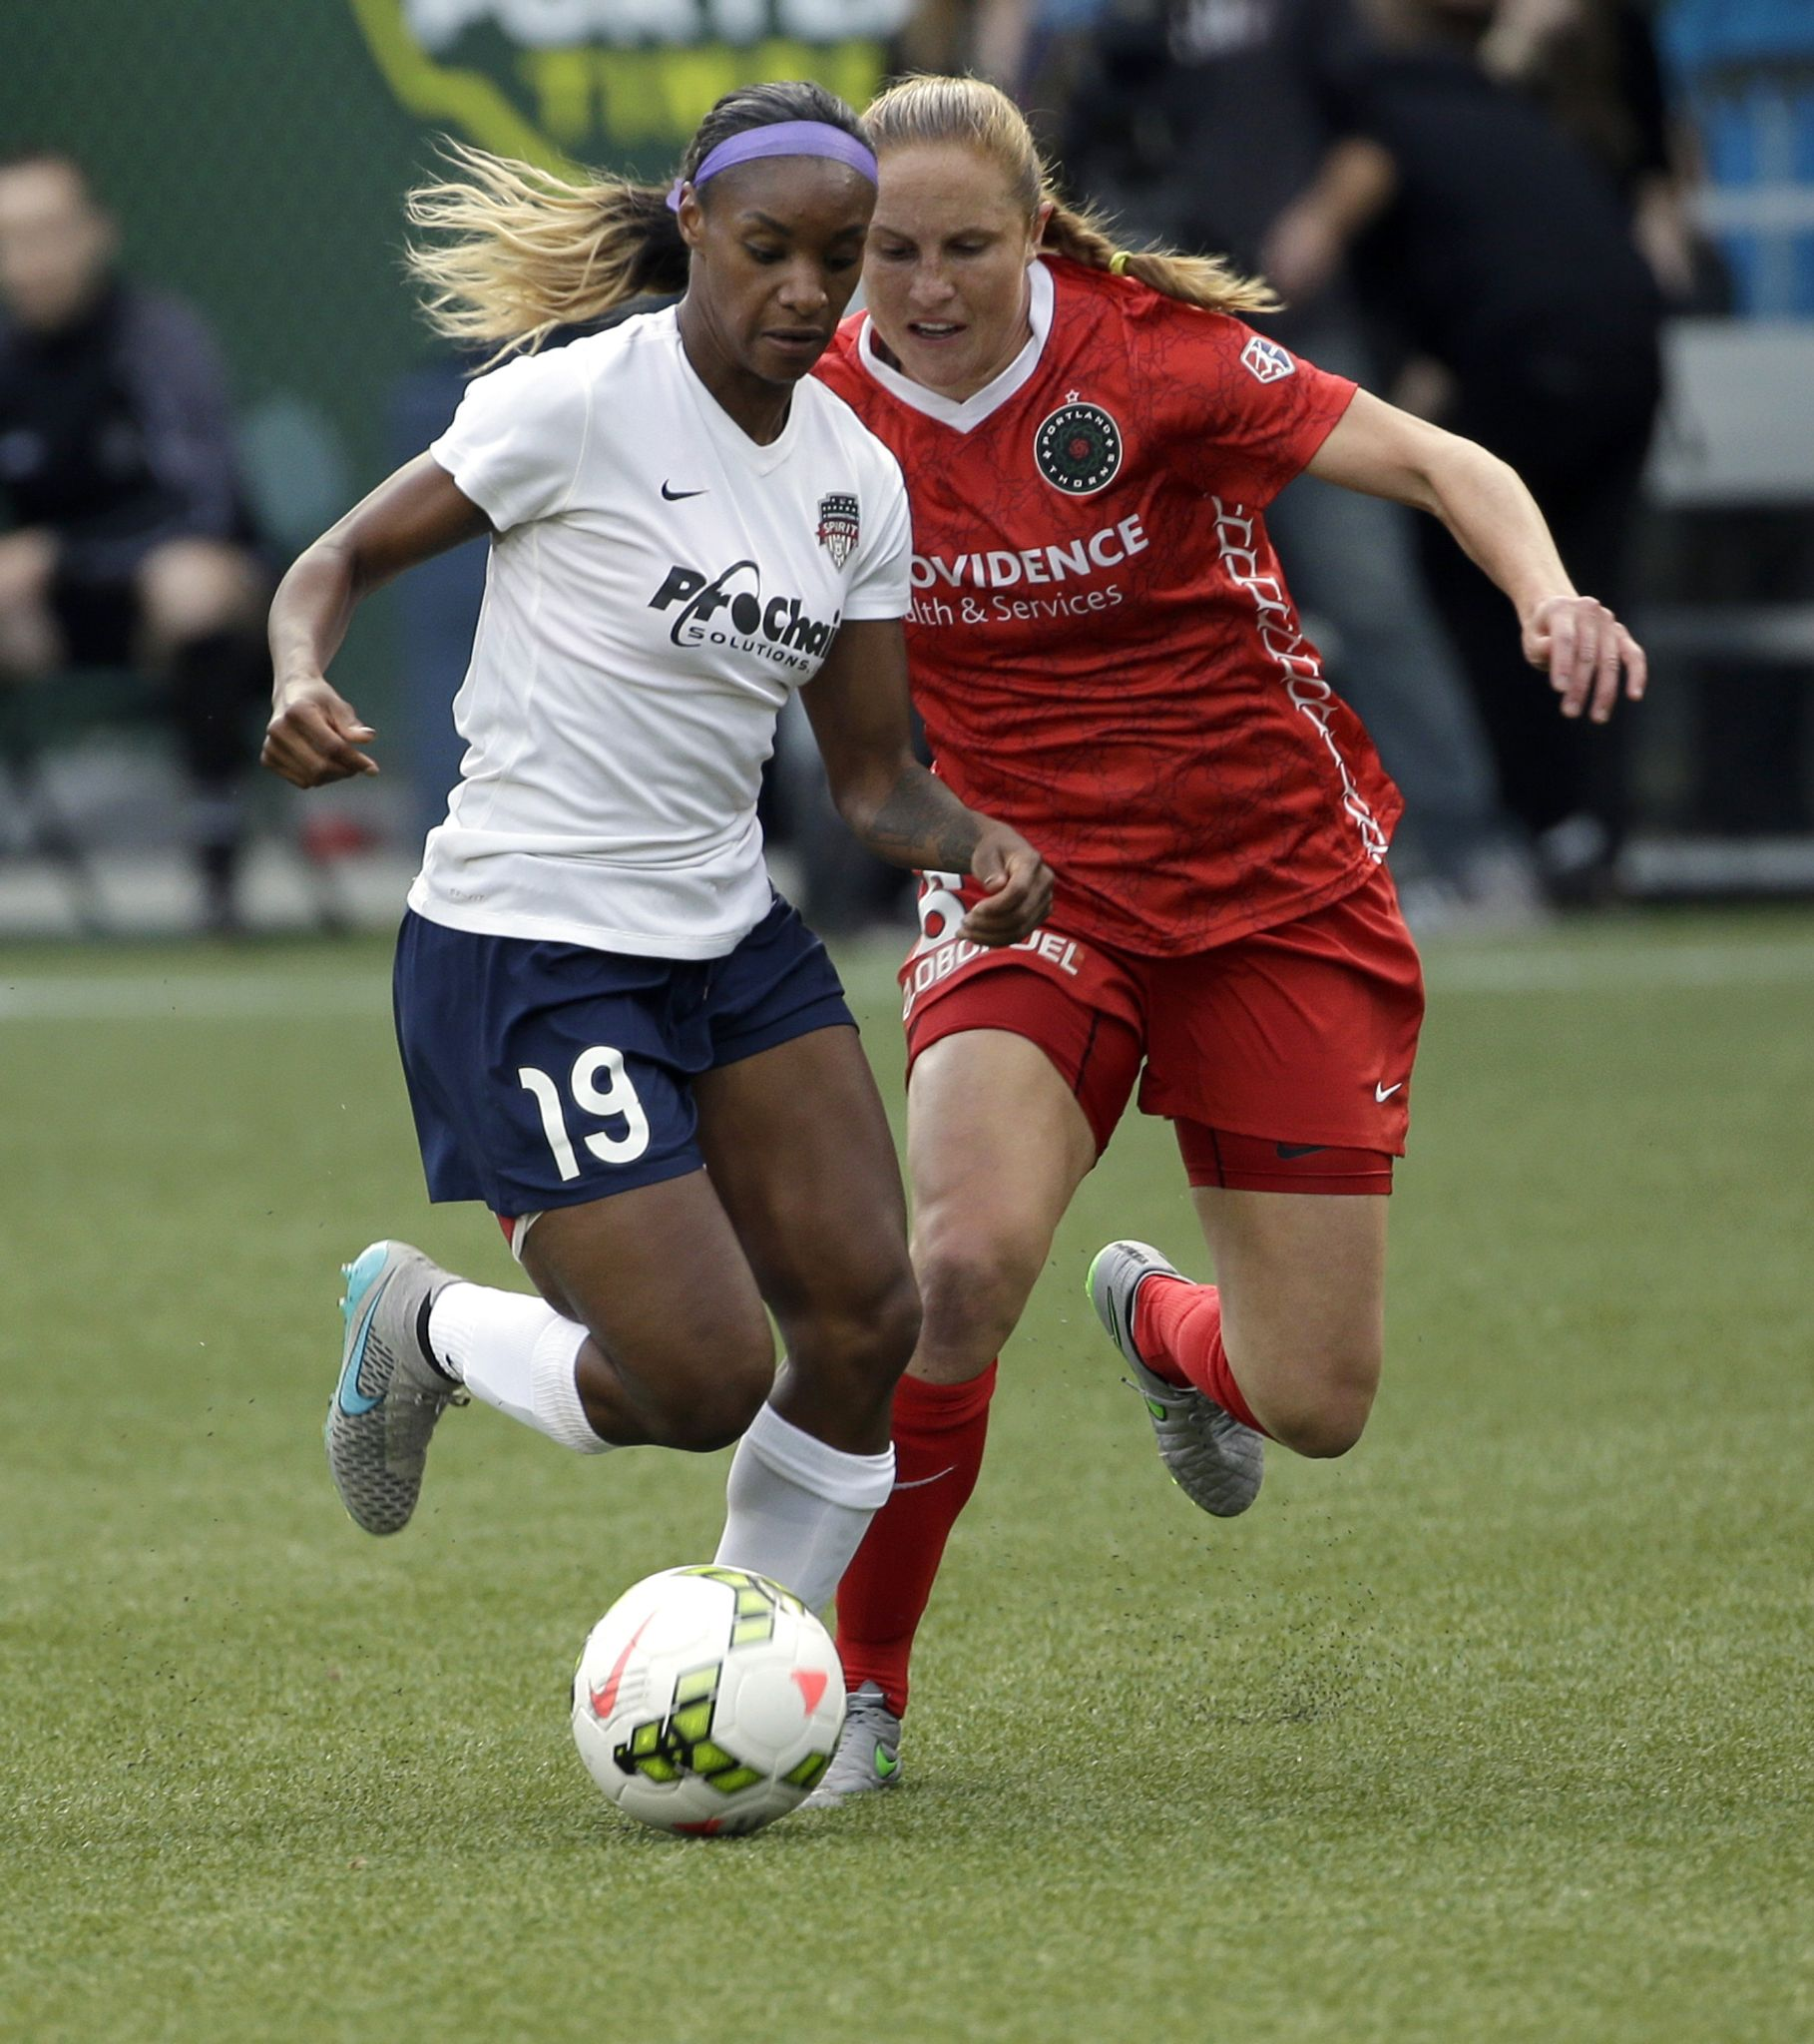 After Women's World Cup snub, Crystal Dunn's spirited effort could pay off